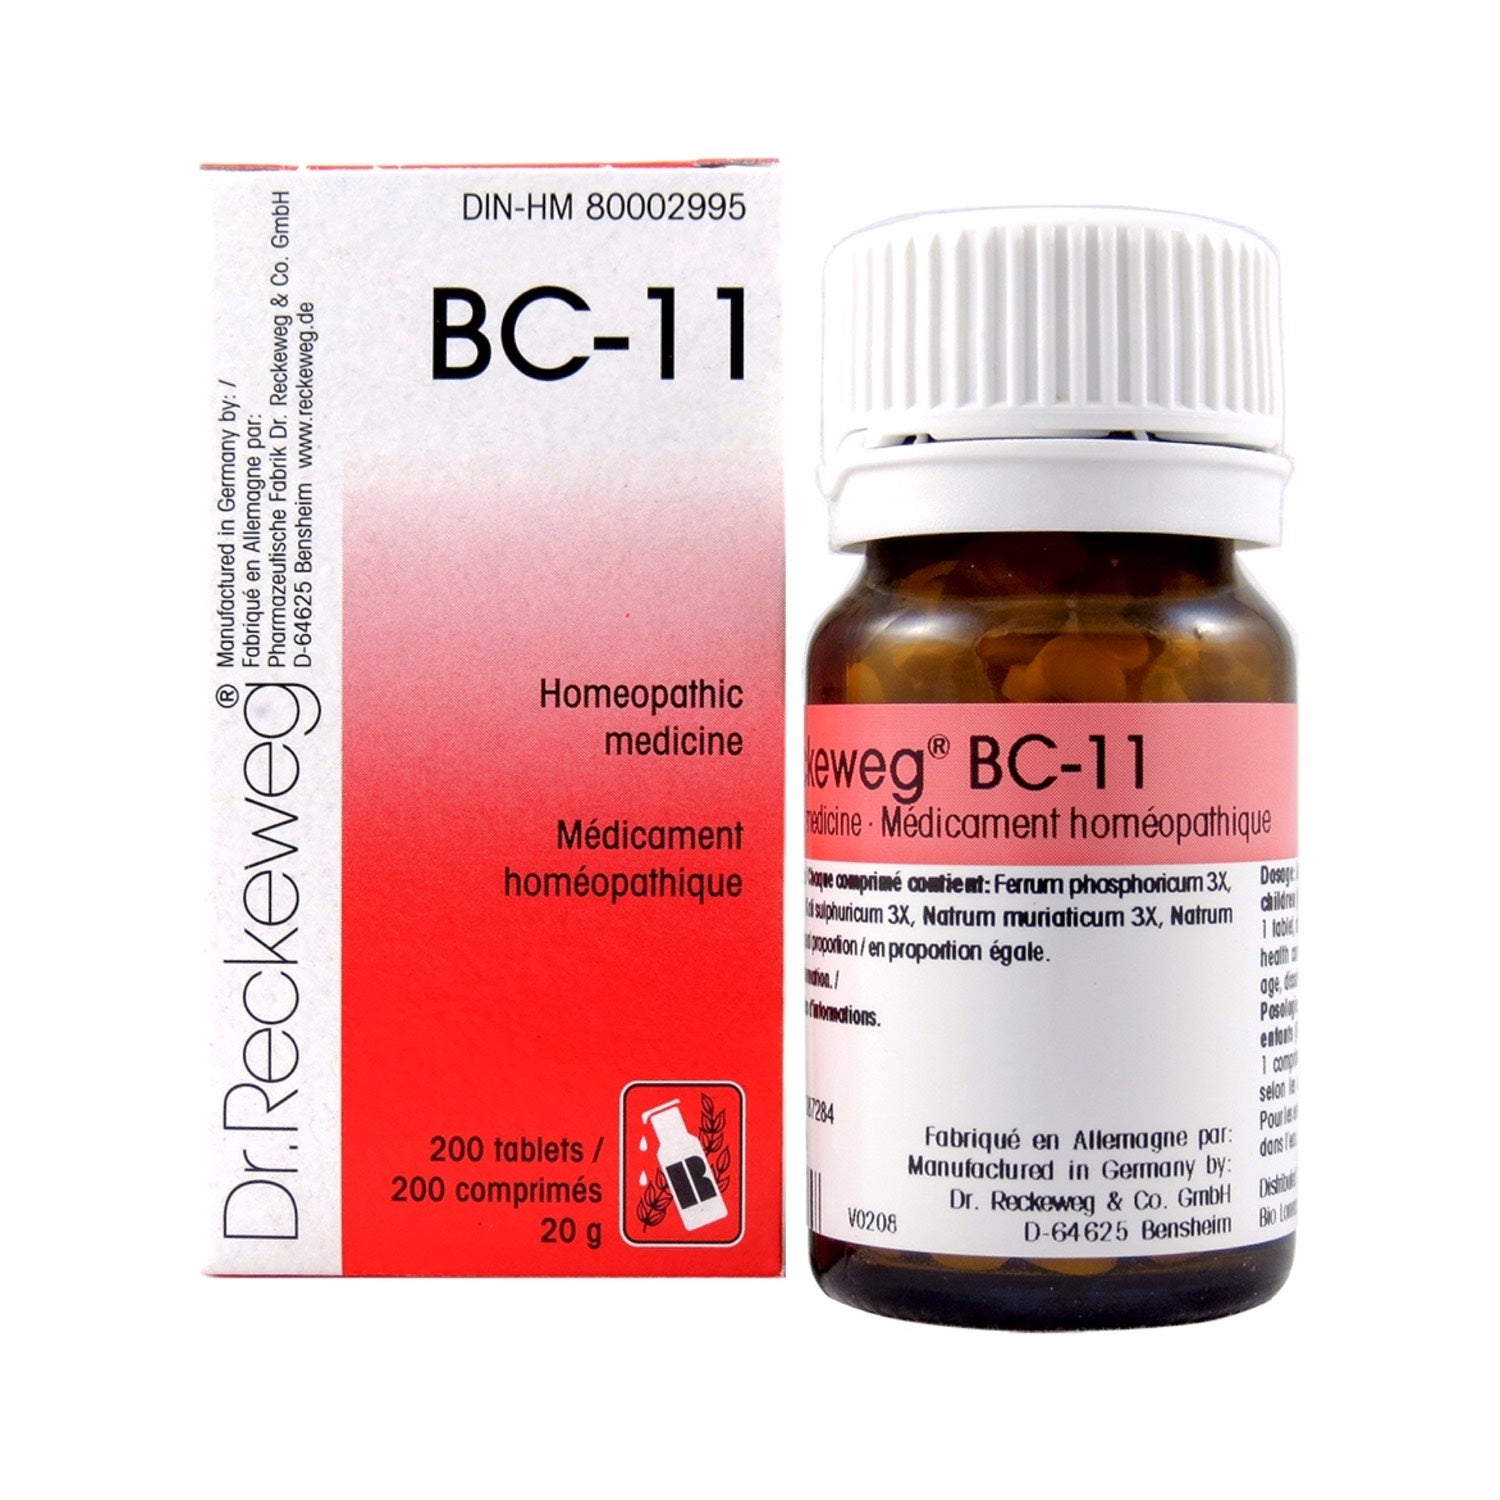 BC-11 Homeopathic medicine – Combination salt  200 tablets (20 g)